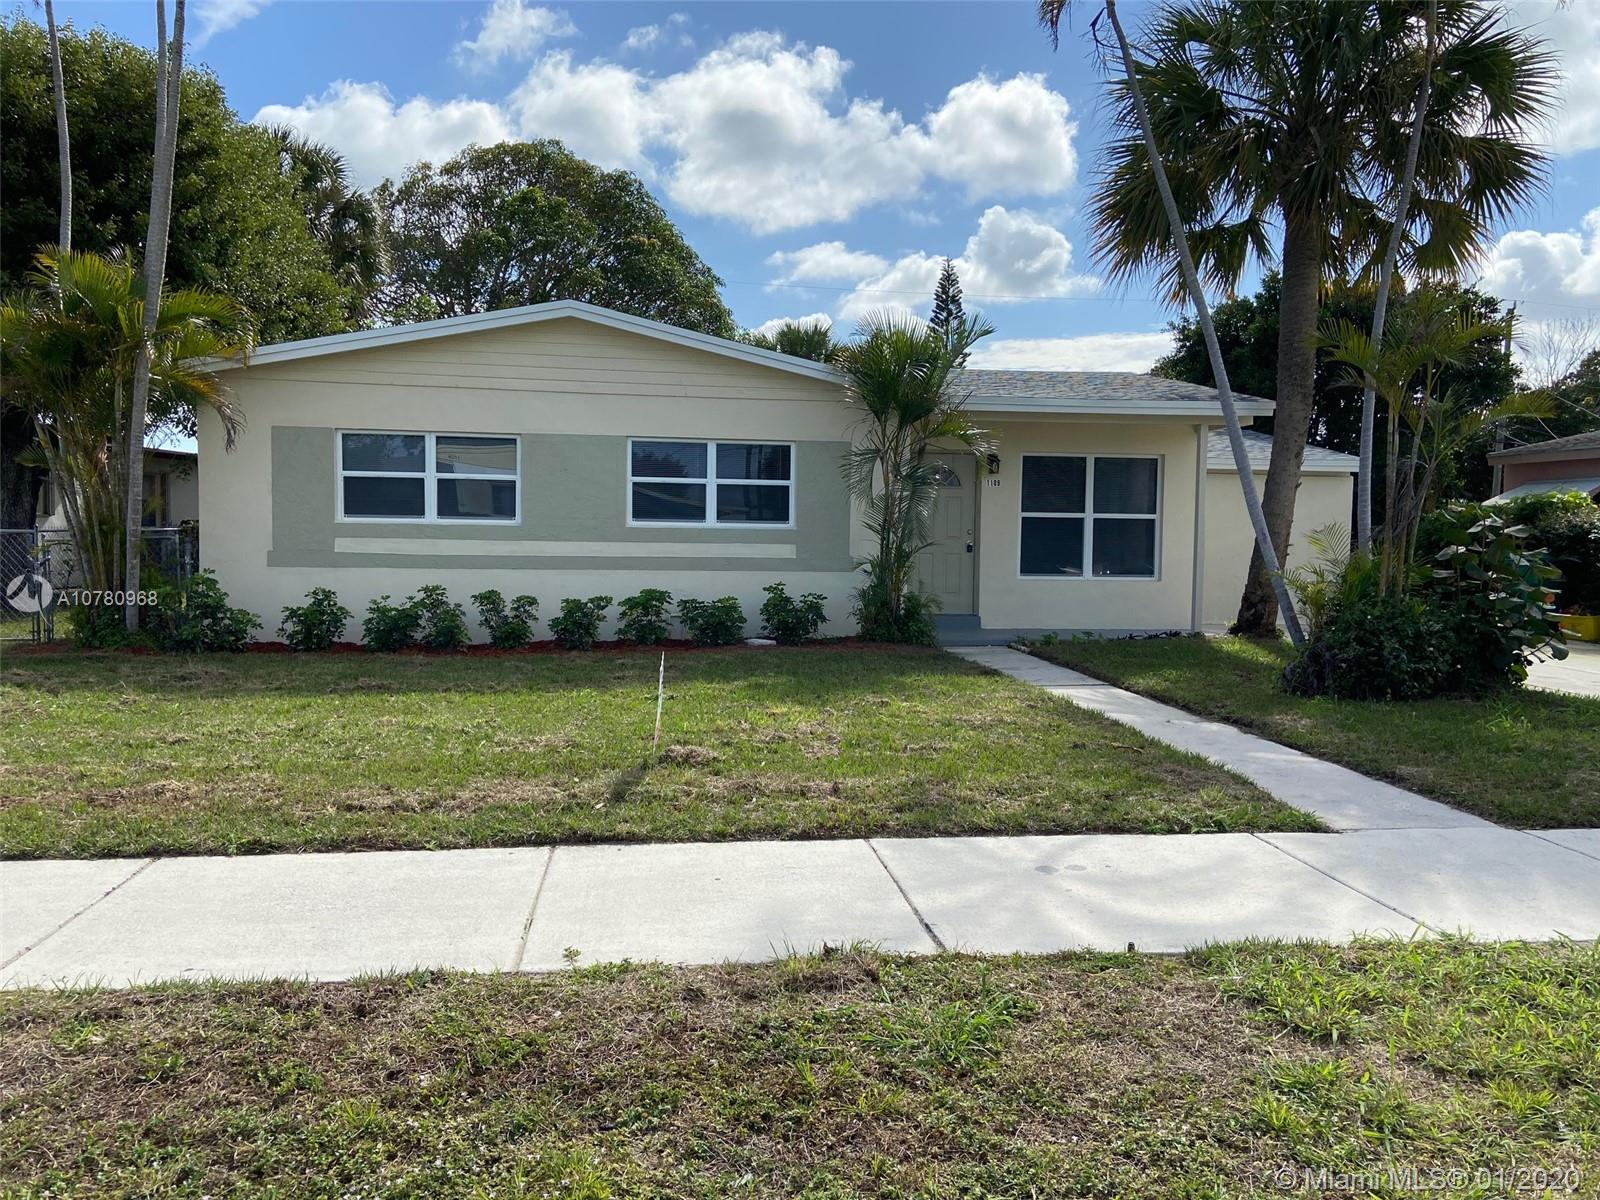 1109 W 27th St, Riviera Beach, FL 33404